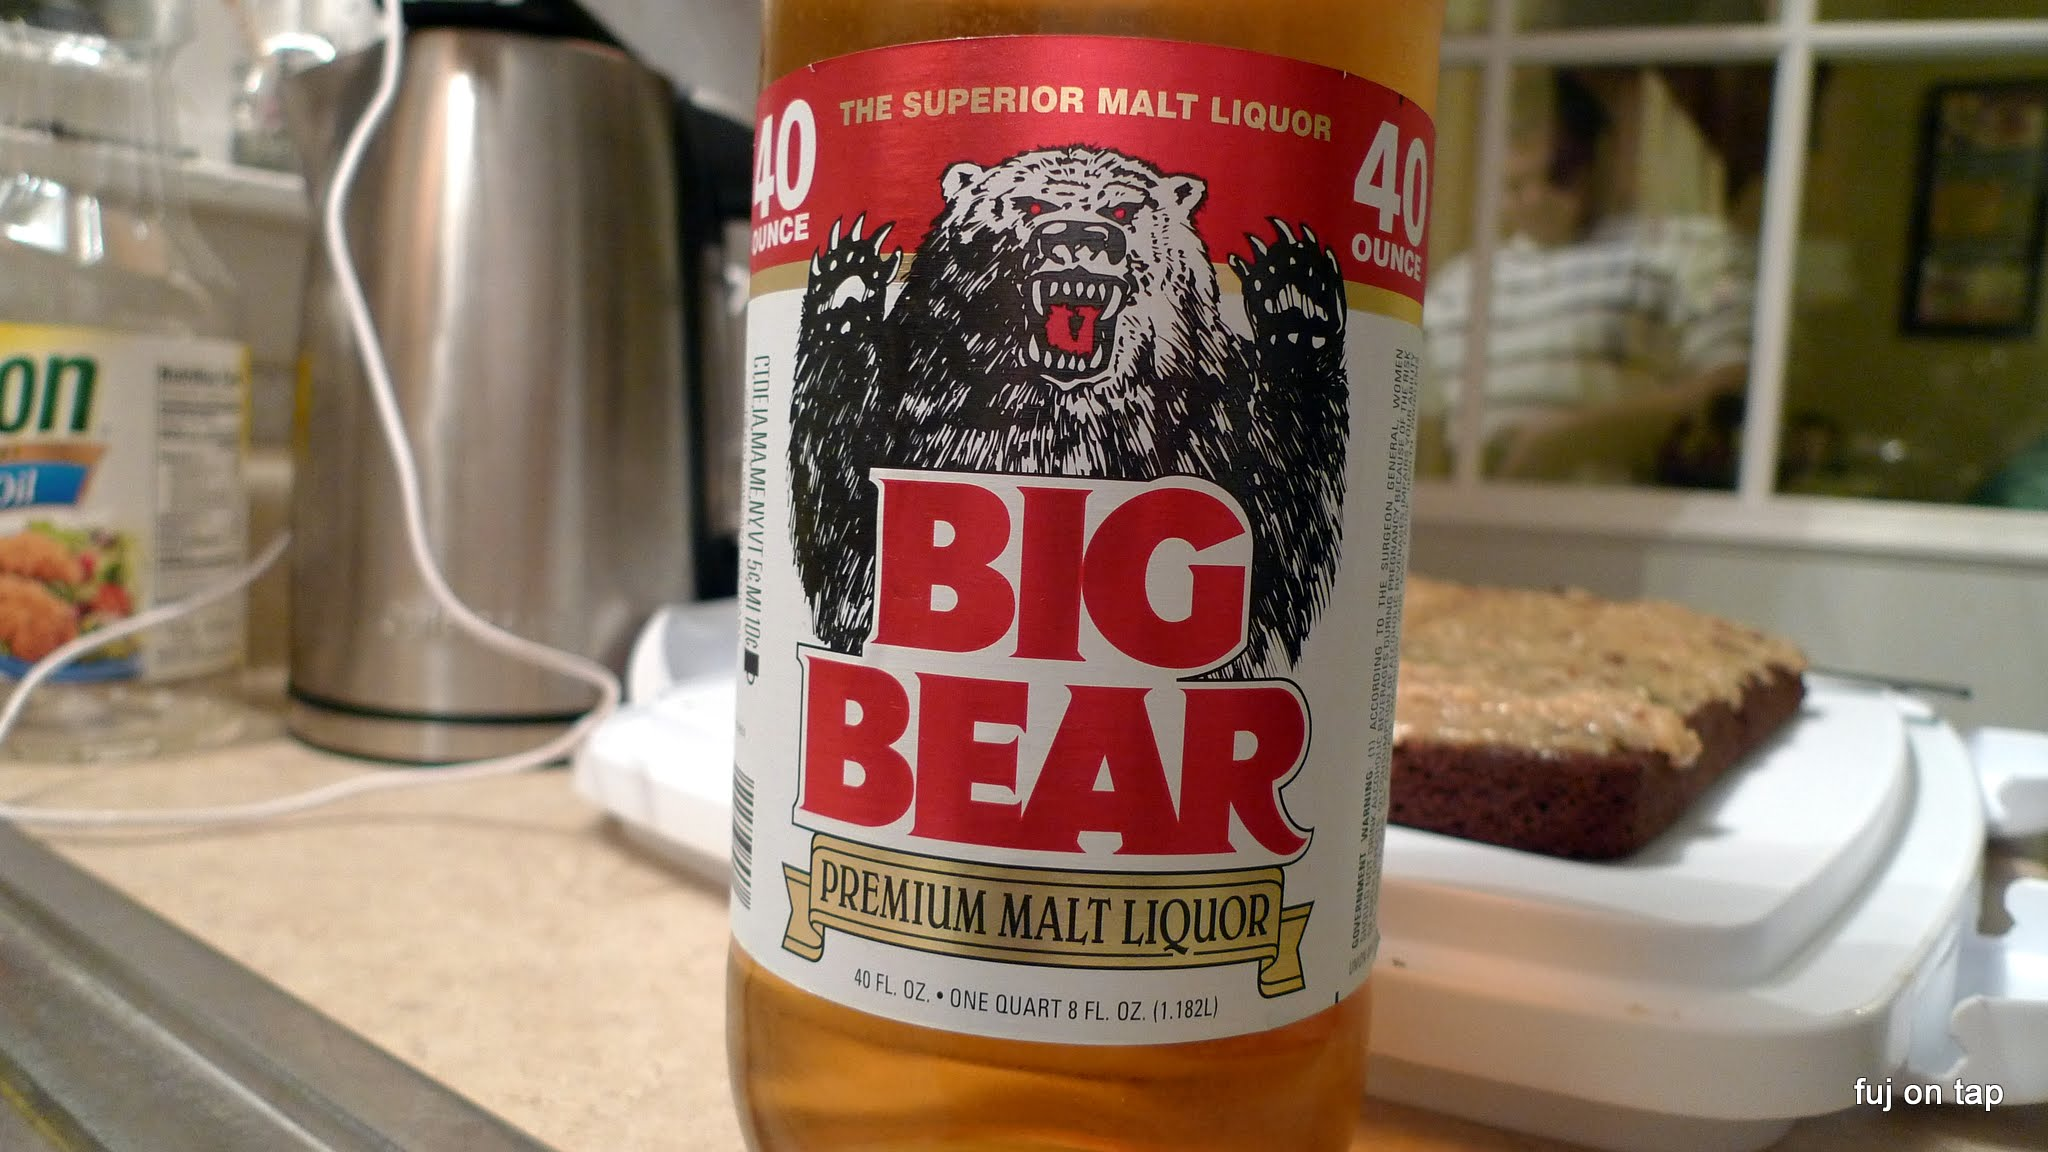 Big Bear 40 OZ